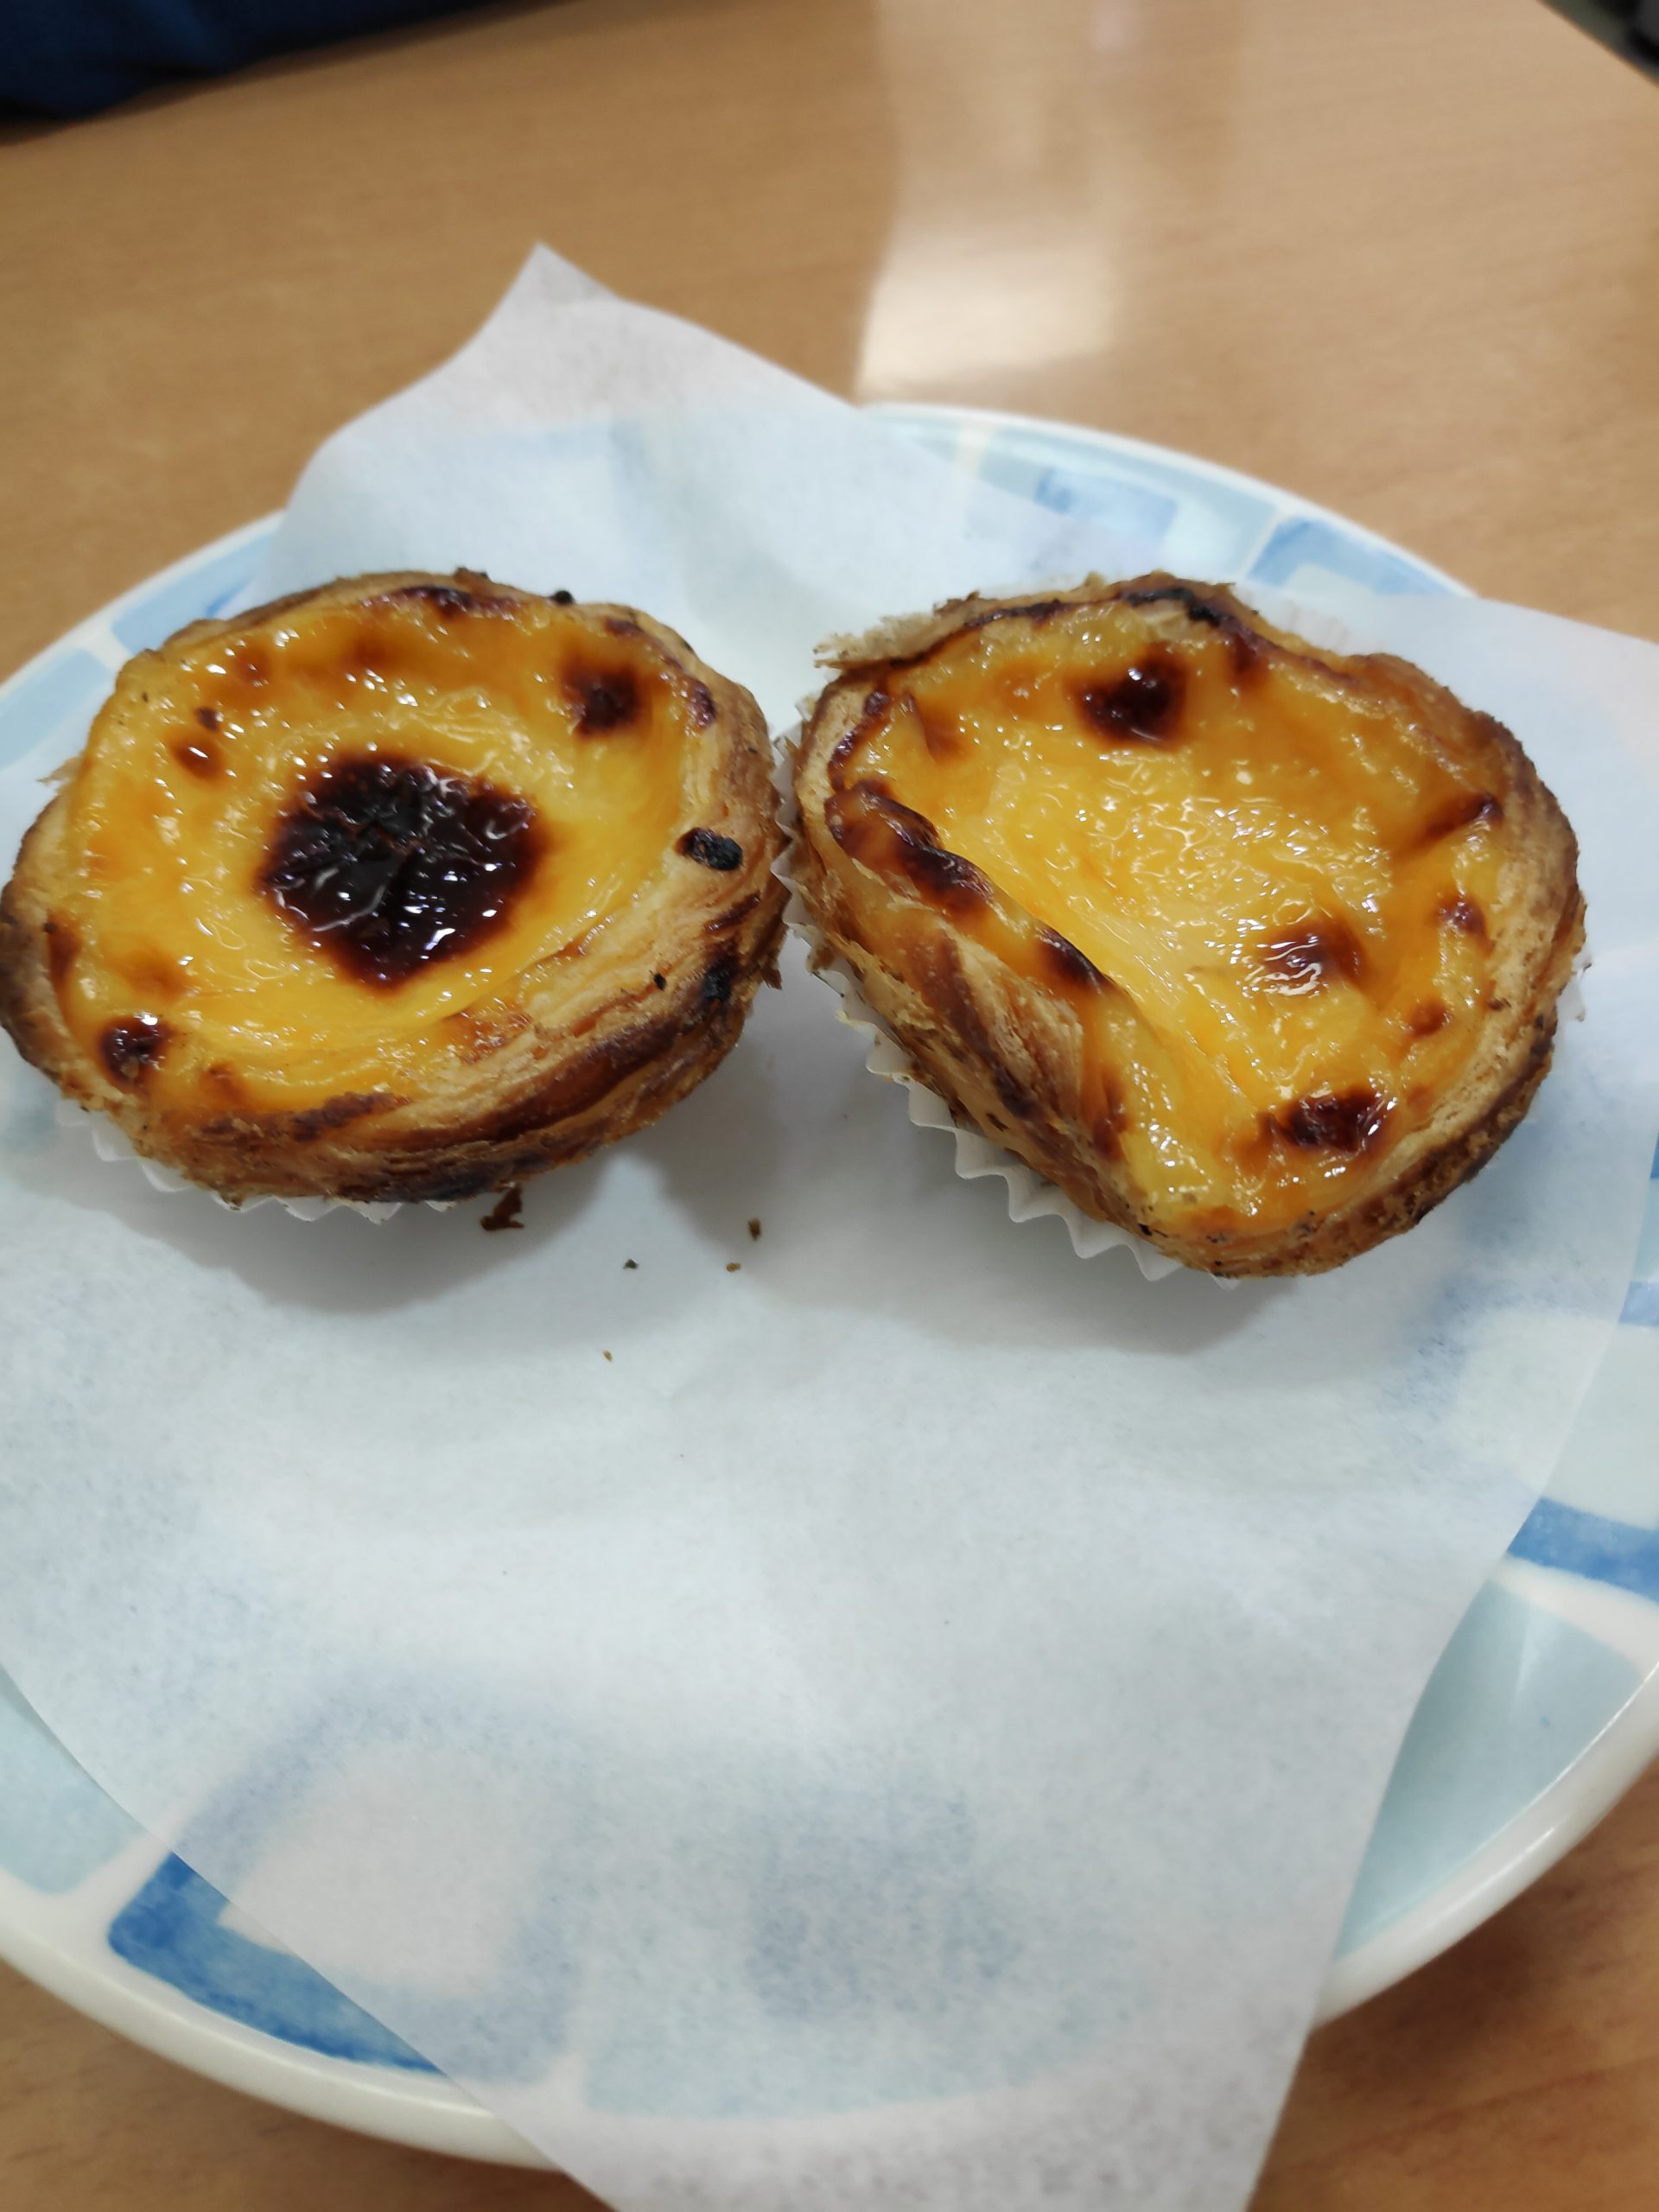 Pasteis de nata, they also come with different flavors.